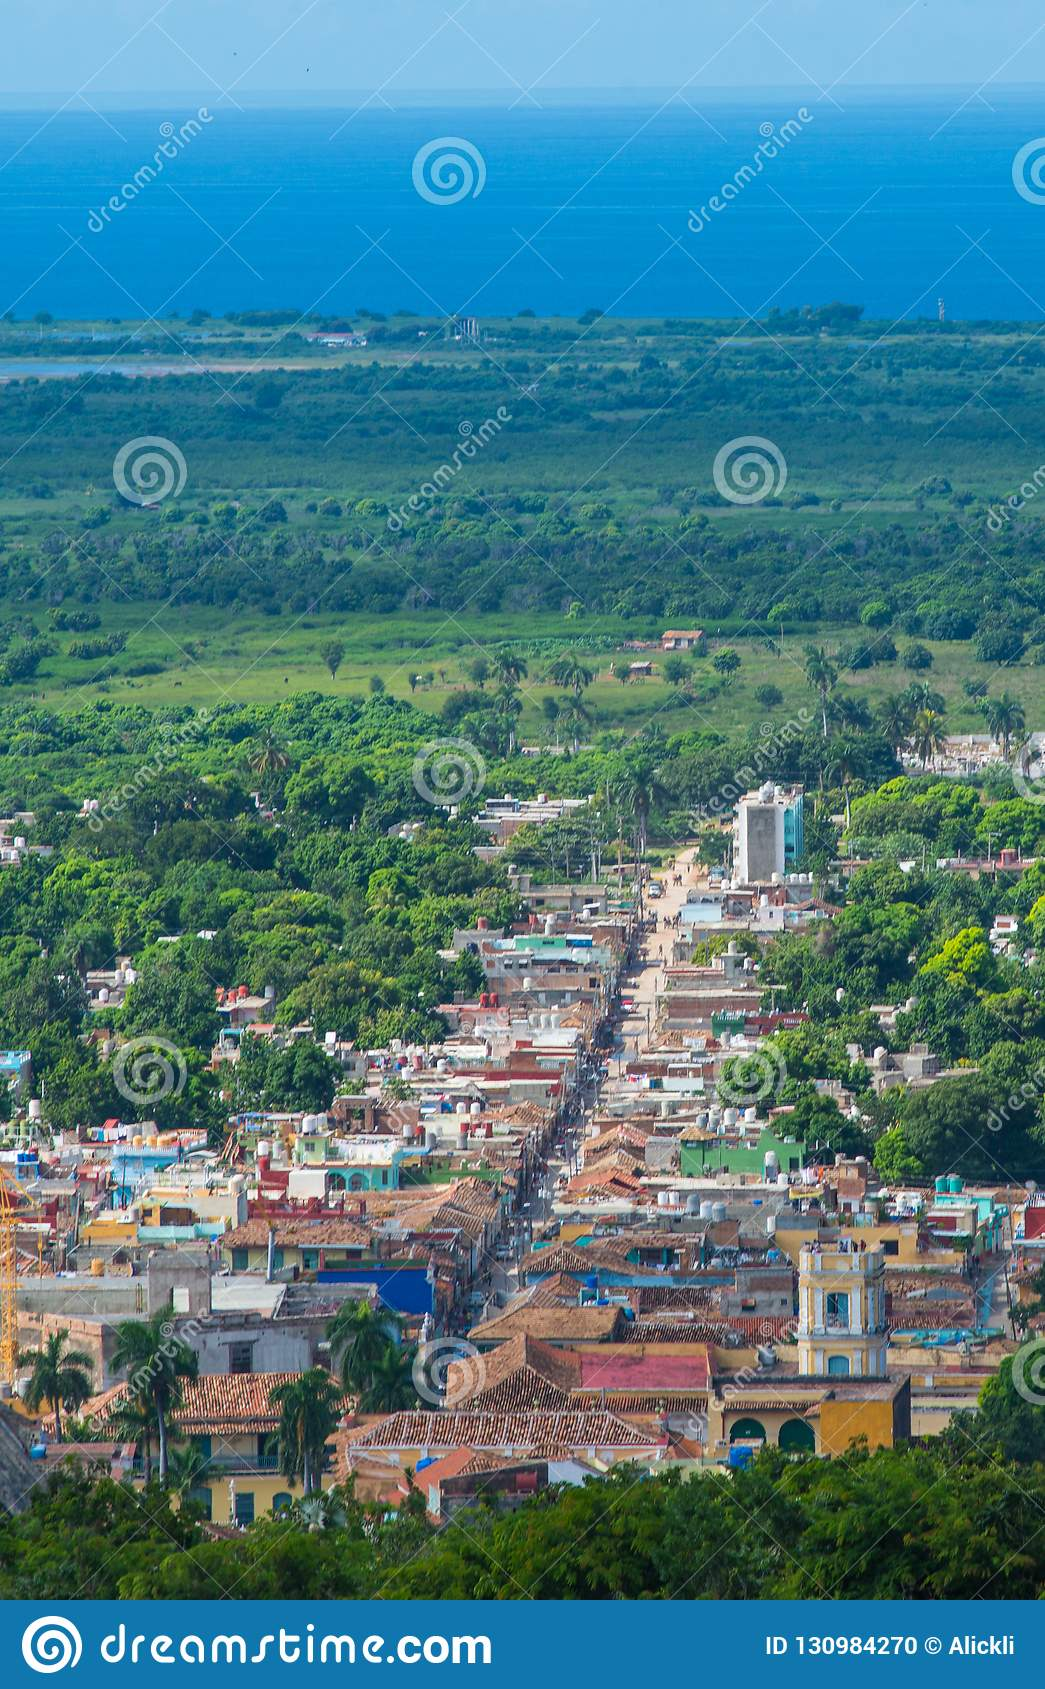 Colorful Colonial Caribbean street overlook with classic building and house, Trinidad, Cuba, America.